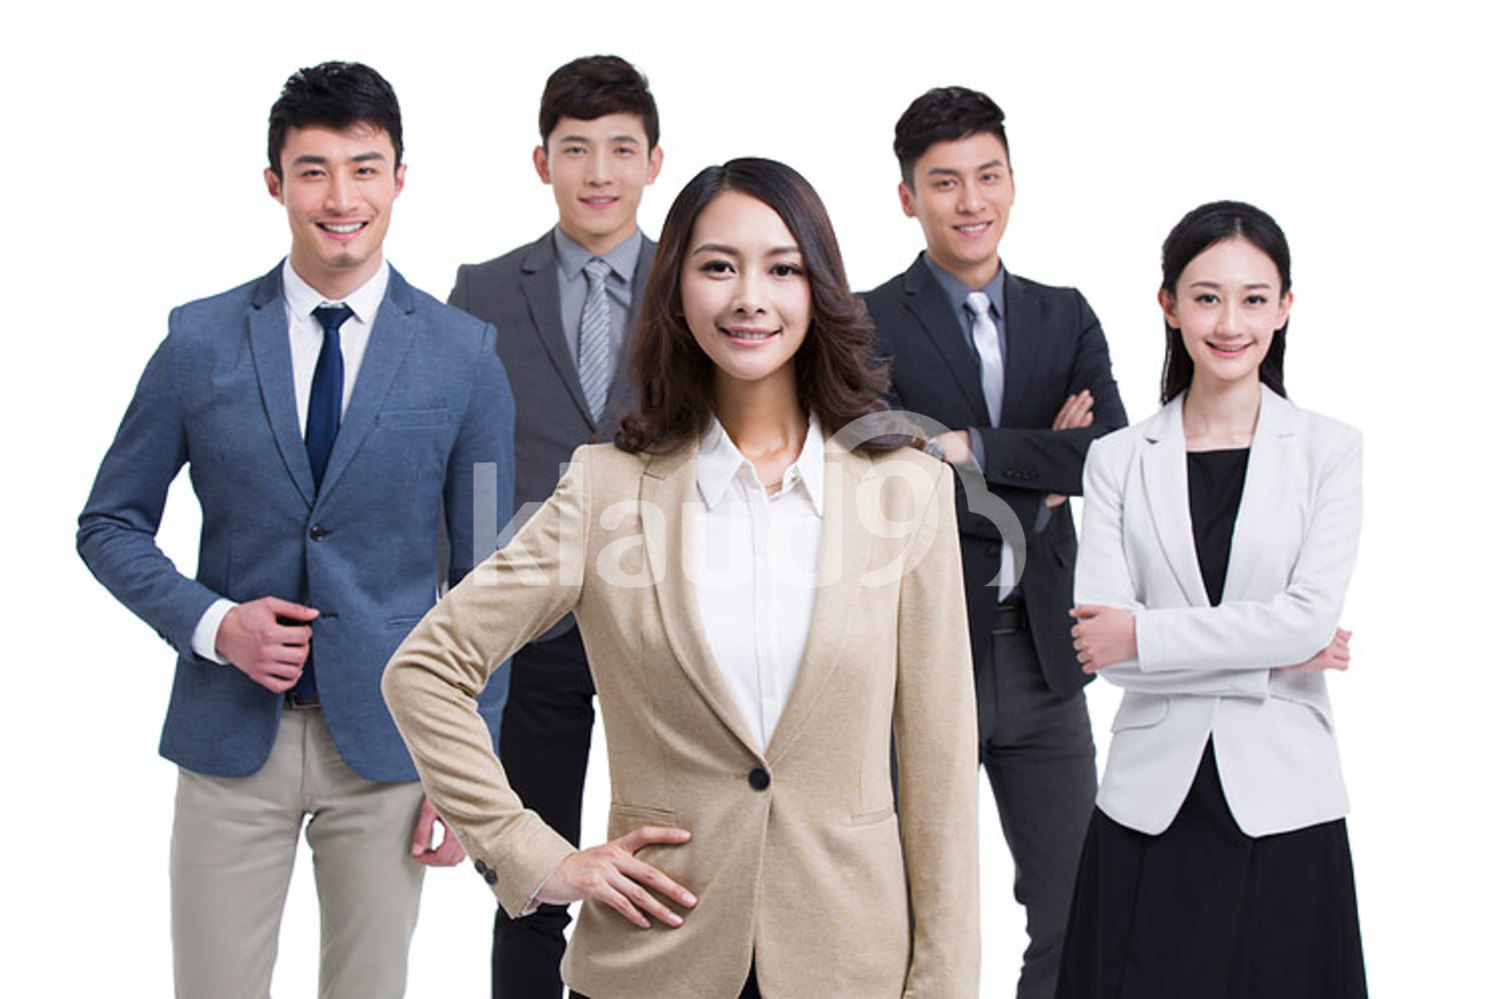 Group of successful Chinese business people